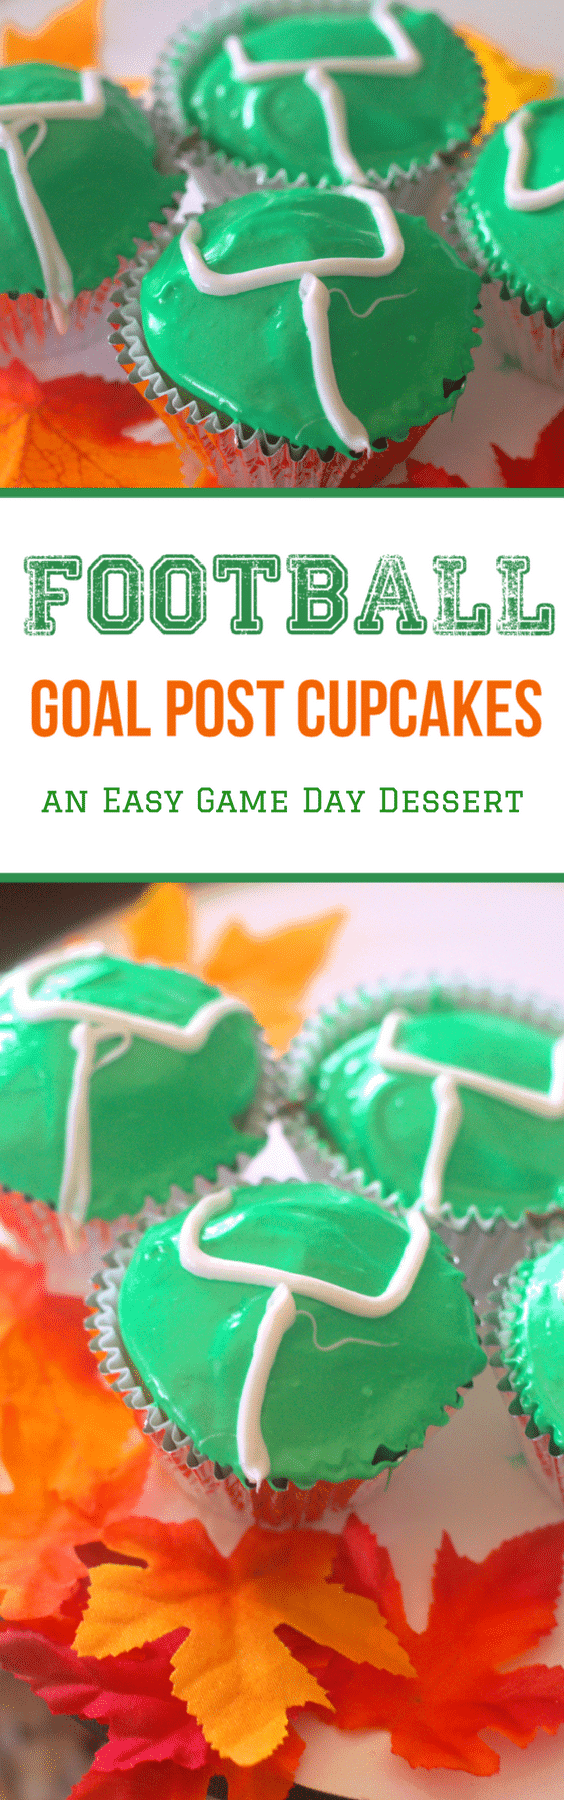 Game Day Food: Football Goal Post Cupcakes